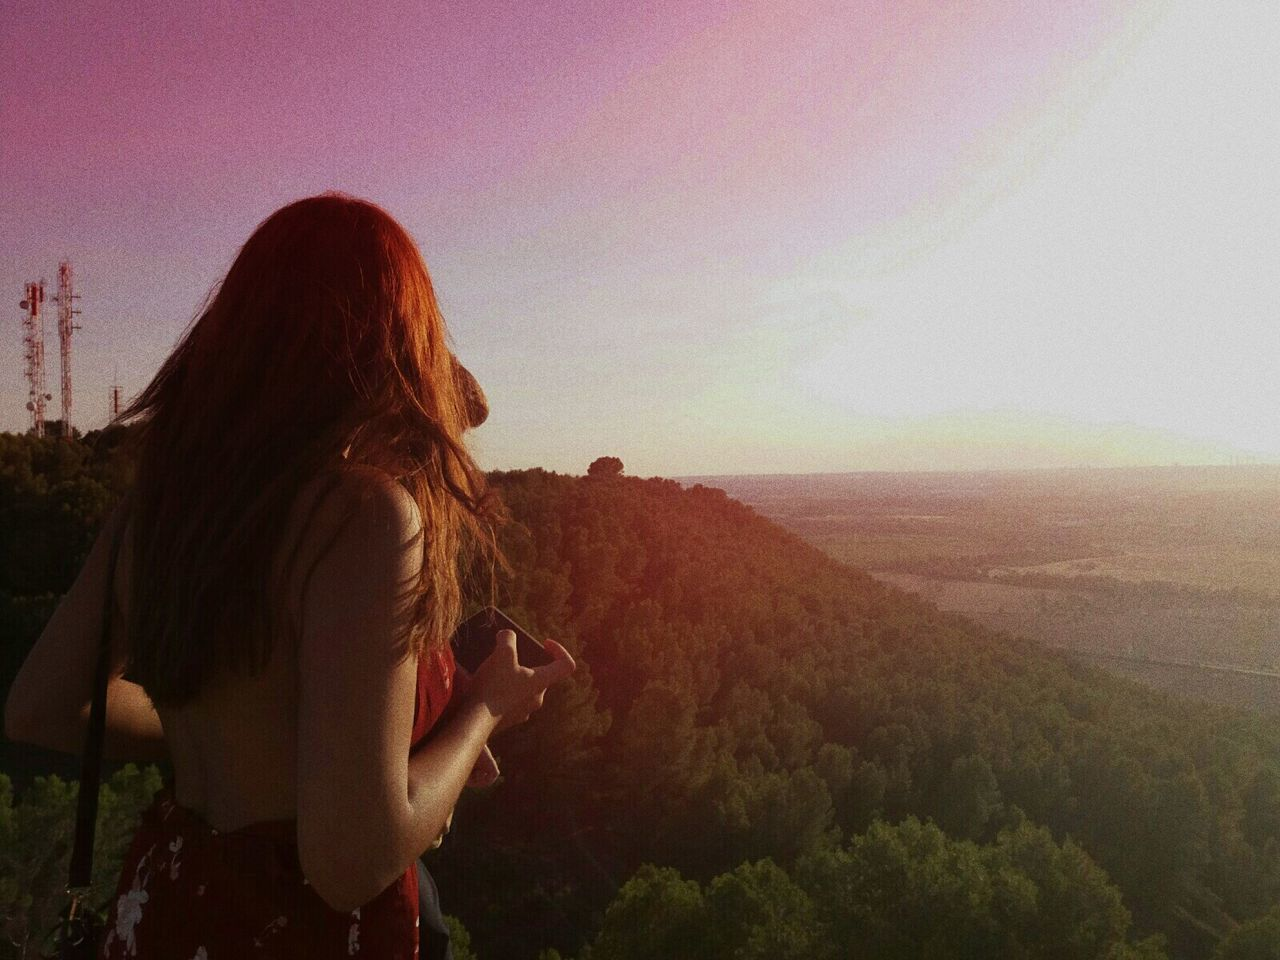 real people, rear view, one person, nature, leisure activity, landscape, long hair, standing, women, lifestyles, scenics, sky, outdoors, tranquility, beauty in nature, clear sky, sunset, adventure, day, tree, young adult, people